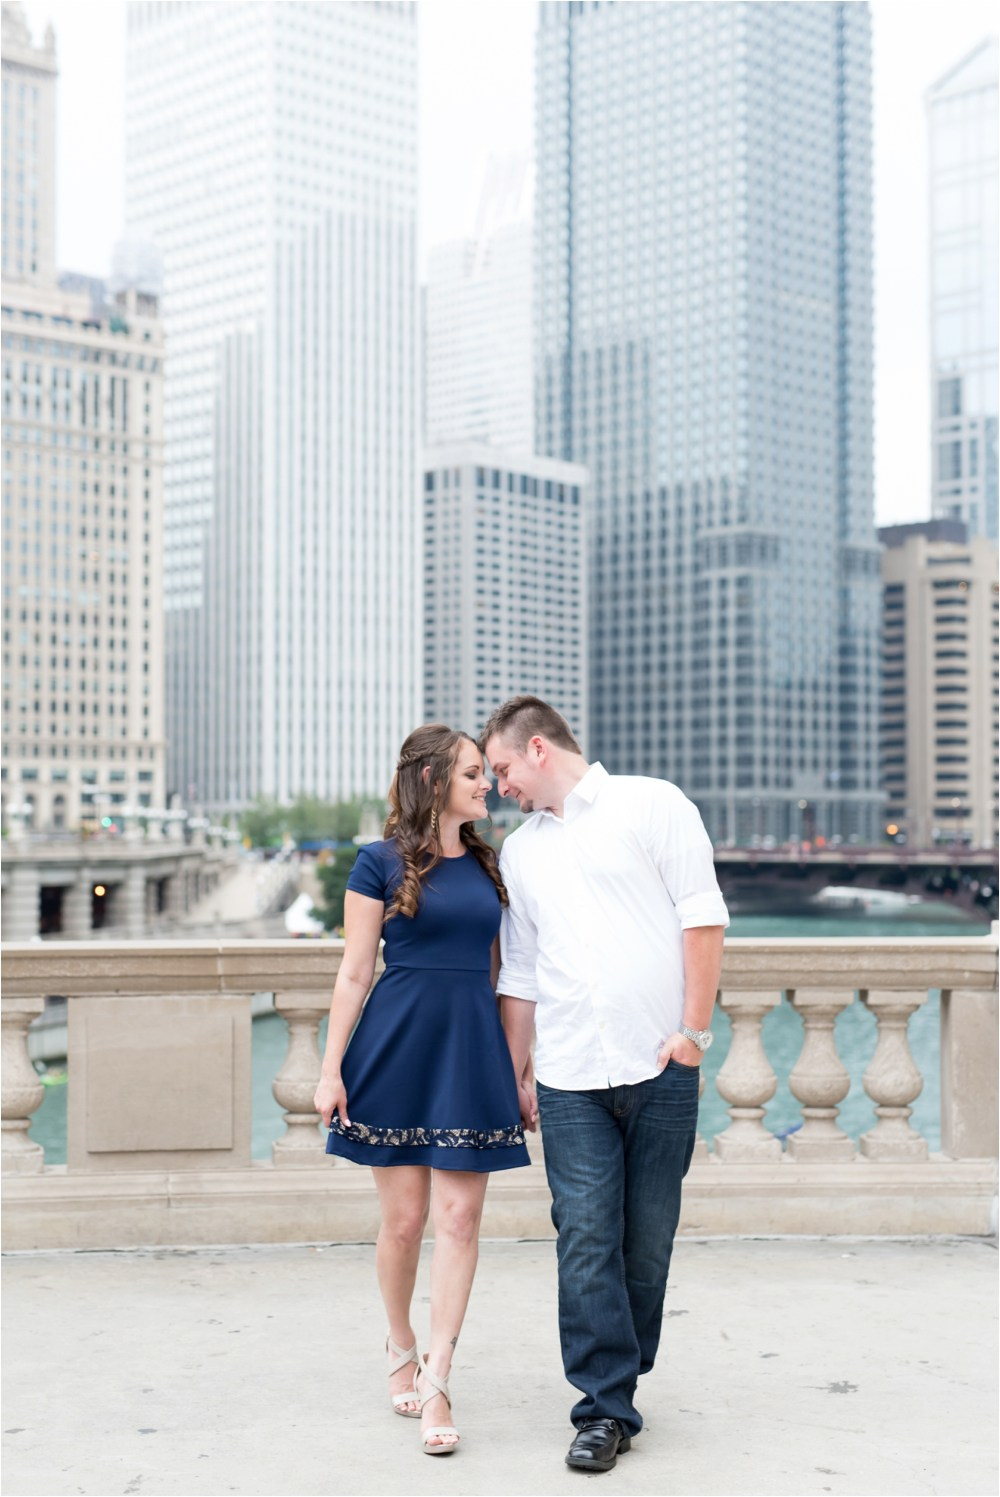 chicago-ilinois-michigna-ave-city-downtown-engagement-photo-11.jpg